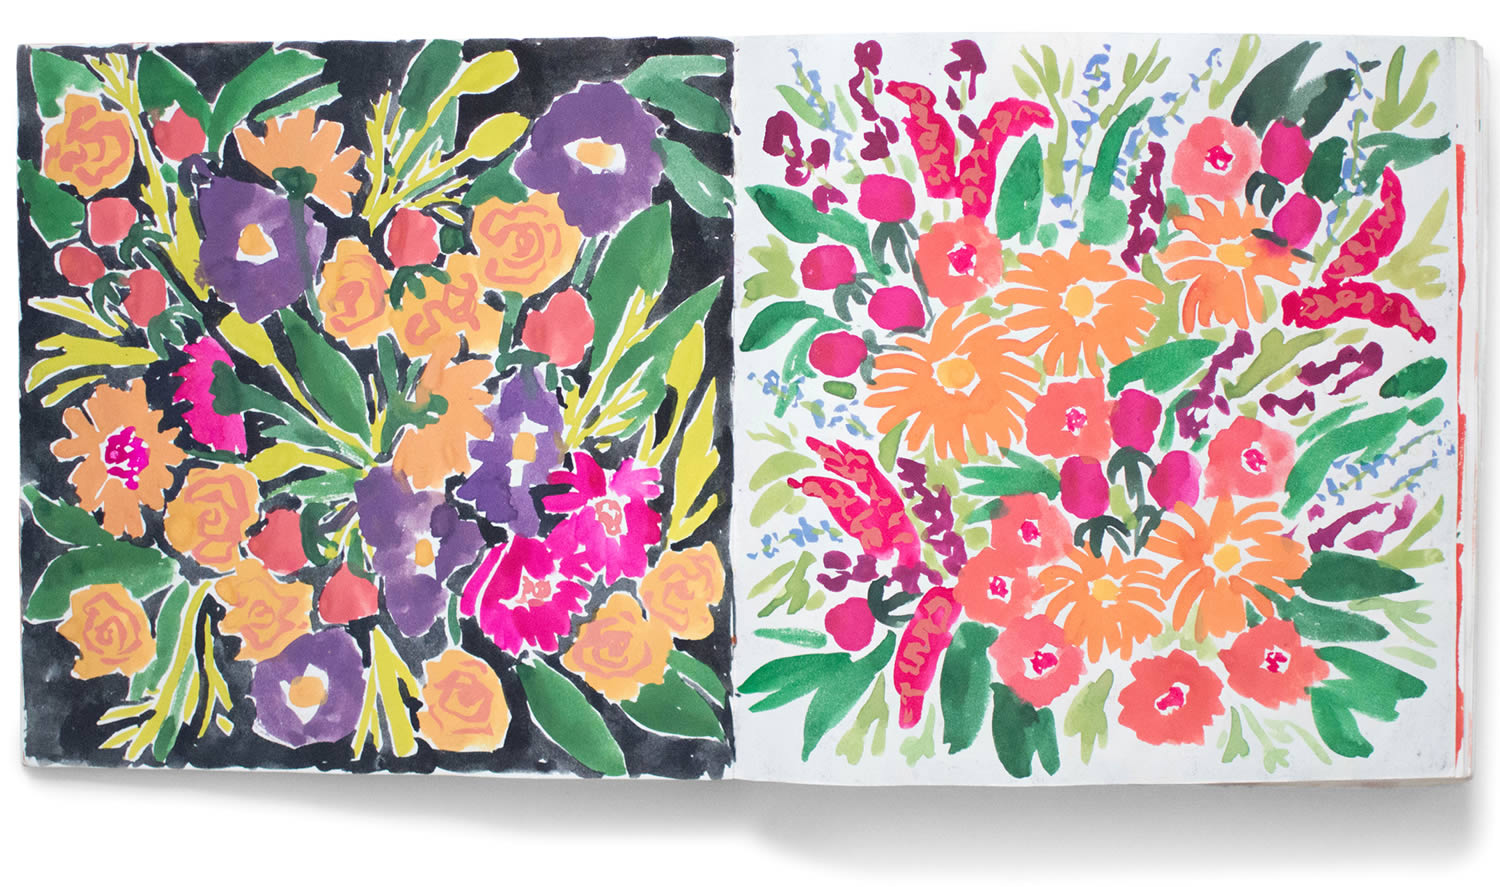 bright flowers by , by Leah Reena Goren